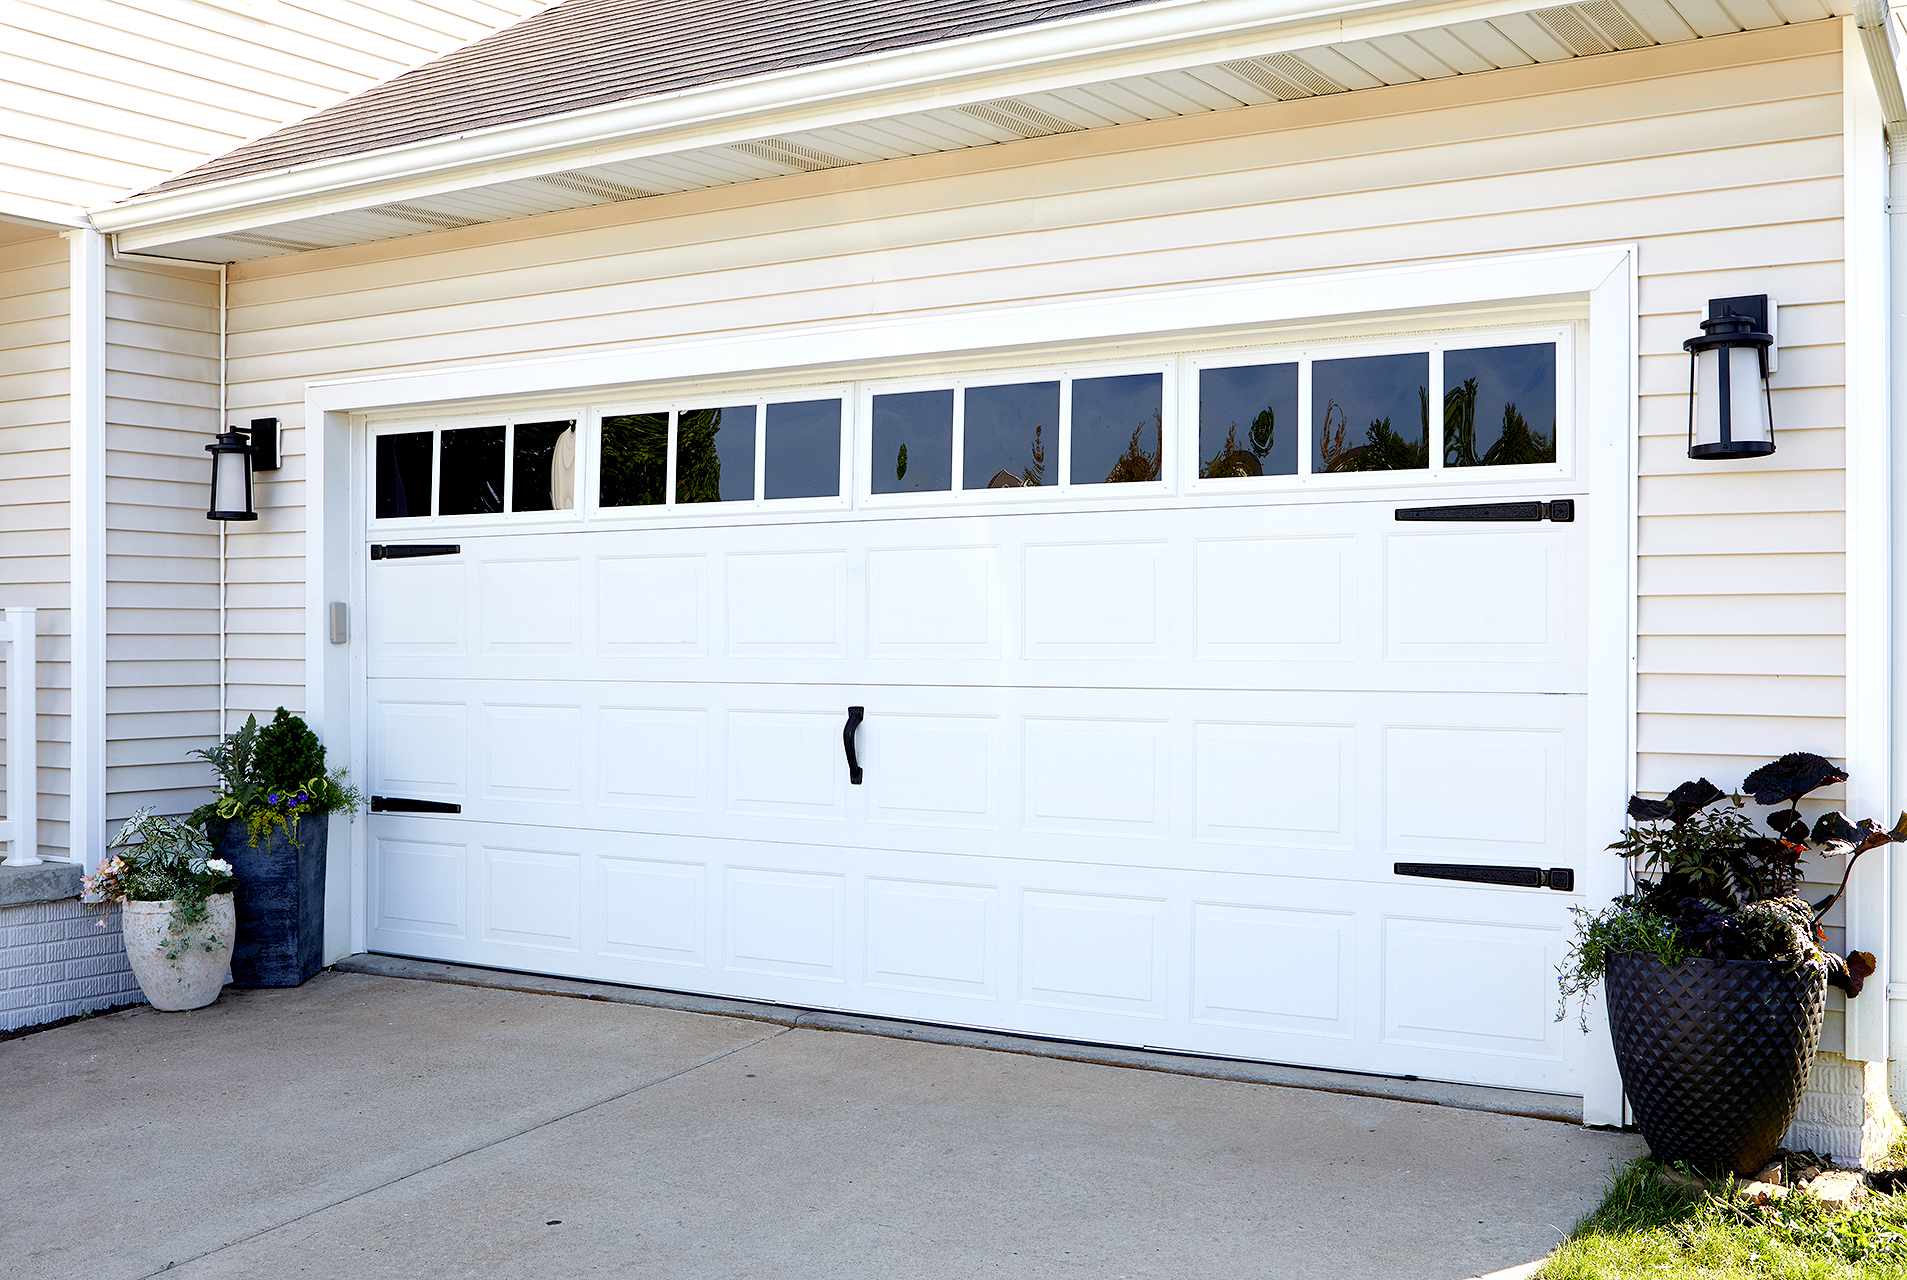 renovated garage door with decorative hardware